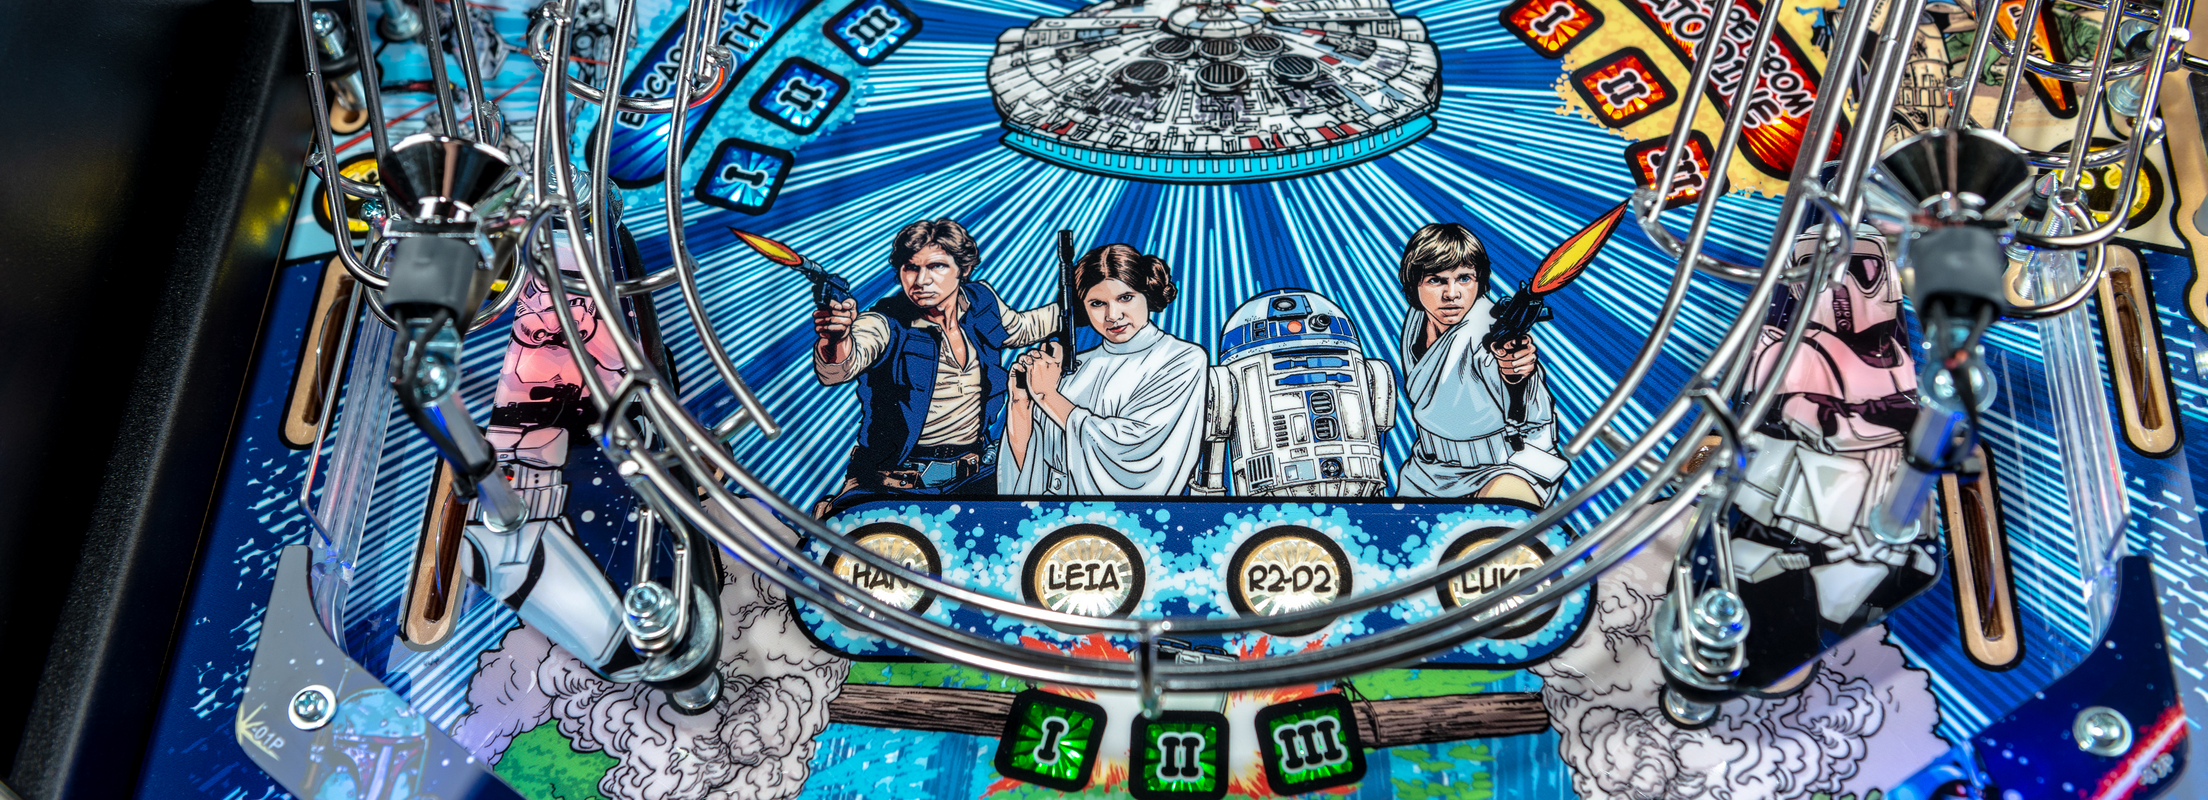 Stern Pinball Announces New Star Wars Comic Art Pinball Machines